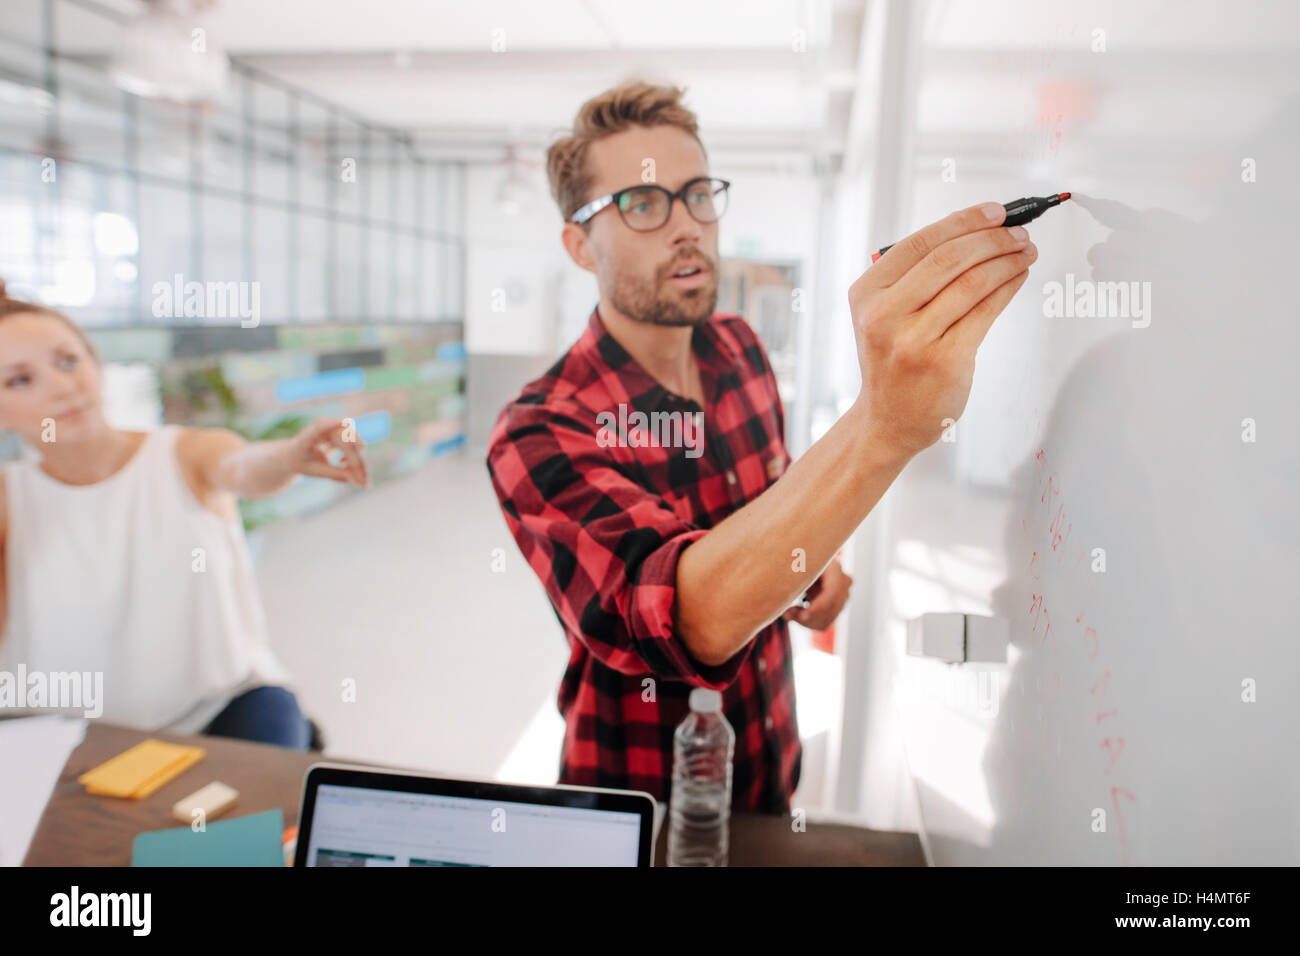 Casual young executive giving a presentation on white board to coworkers. Businesspeople discussing business ideas - Stock Image